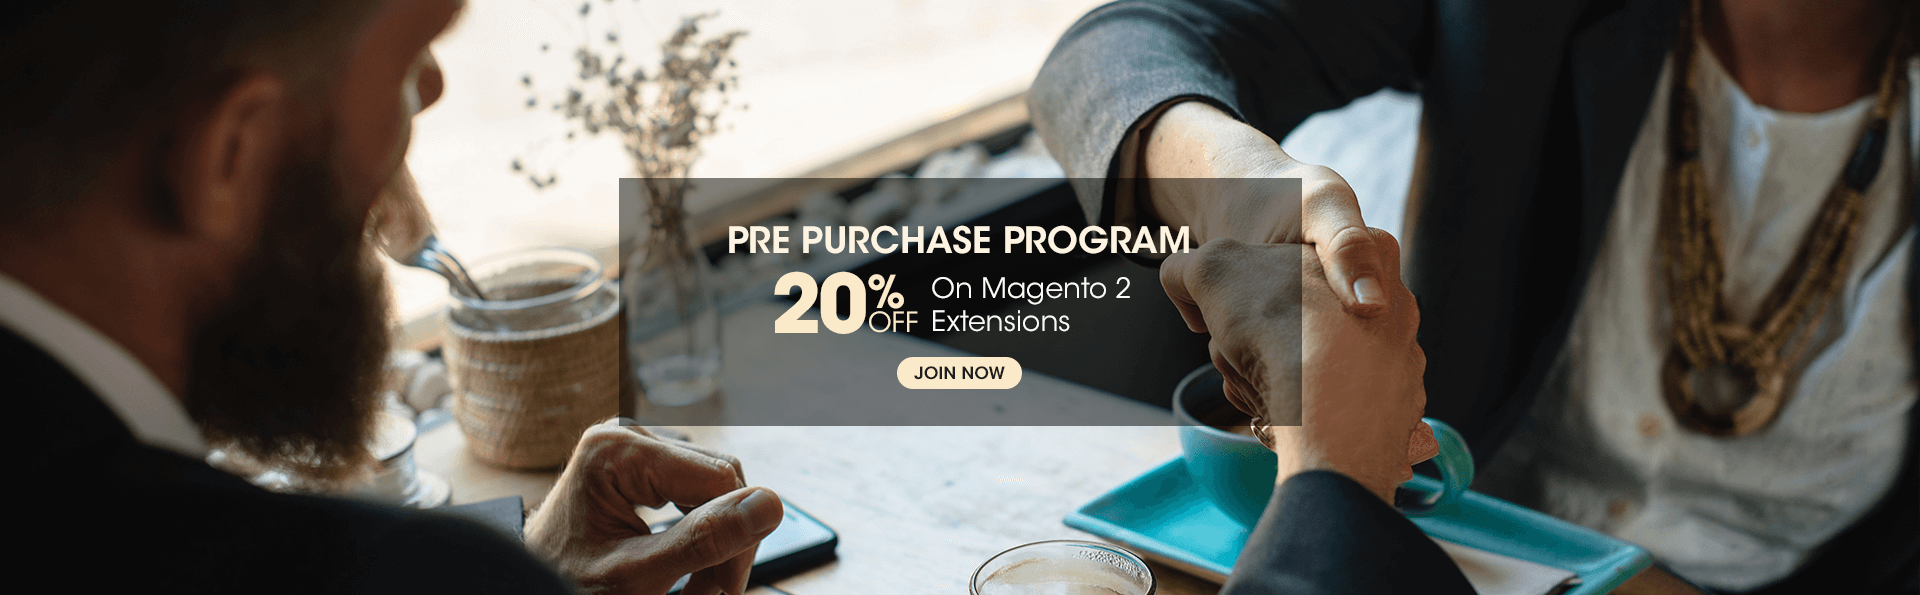 magento-2-pre-purchase